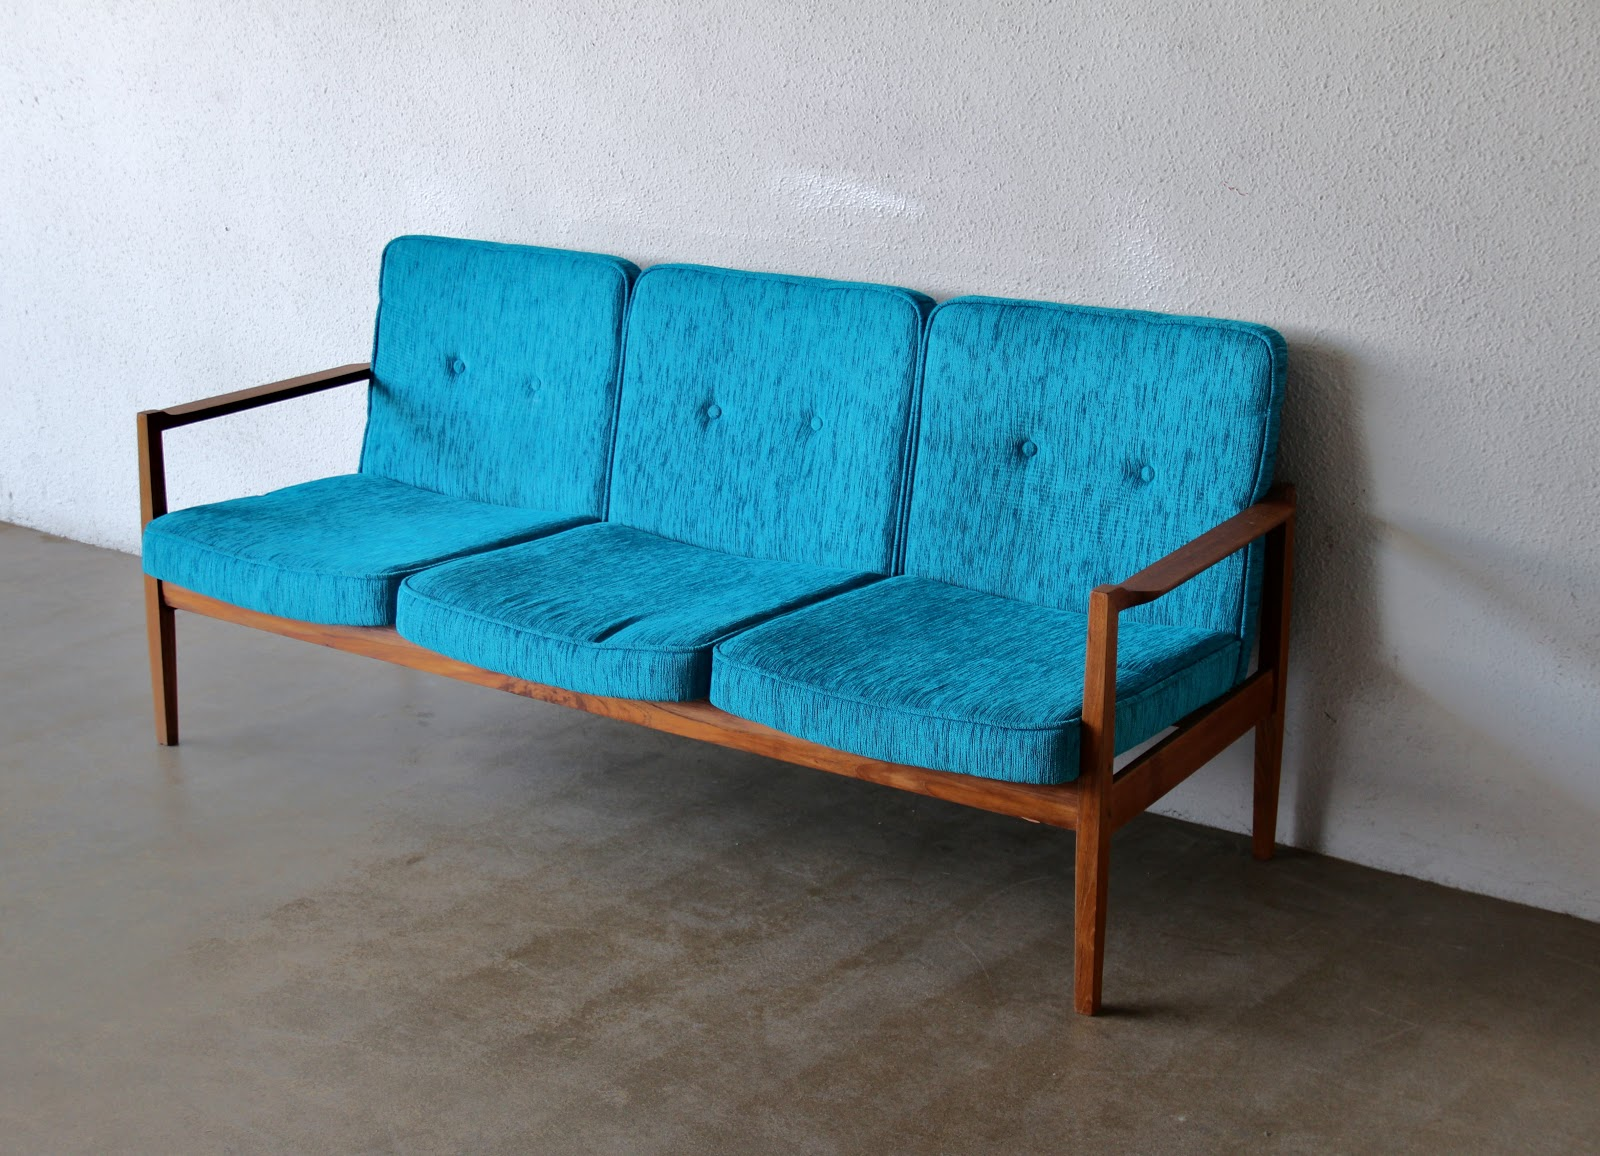 Second charm furniture vintage midcentury sofas and for Retro furniture